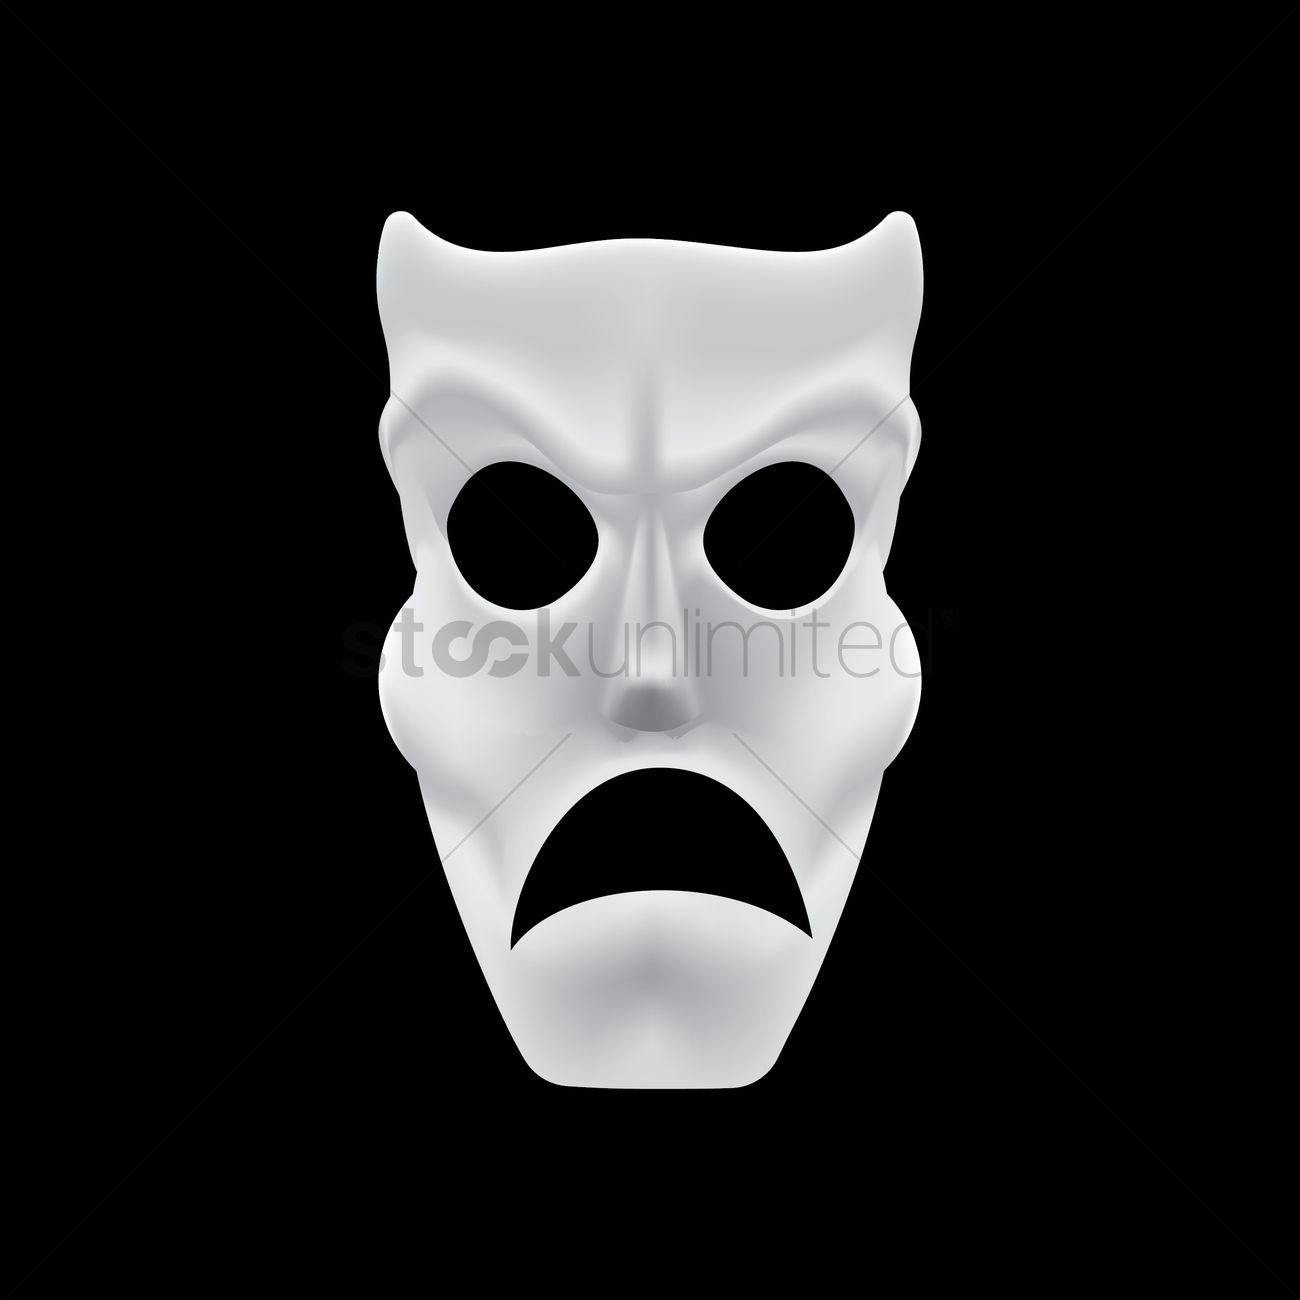 Mask with angry expression Vector Image - 1511210  a8206fef6830